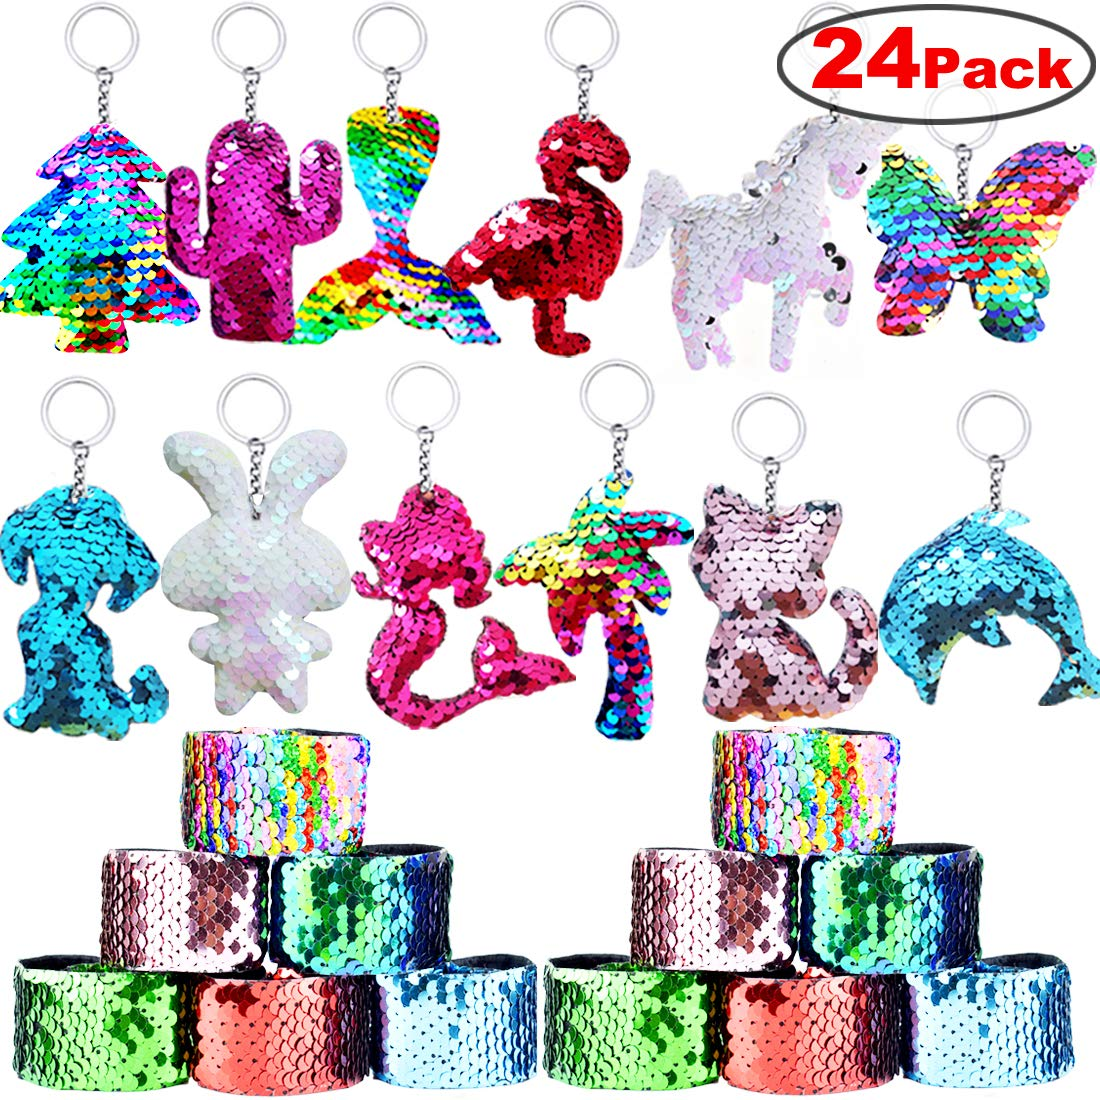 Mermaid Tail Keychains Animal Keychains for Kids Birthday Party Favors Supplies Goodie Bag Fillers Carnival Prize 24 Pack Danirora Sequin Keychains,